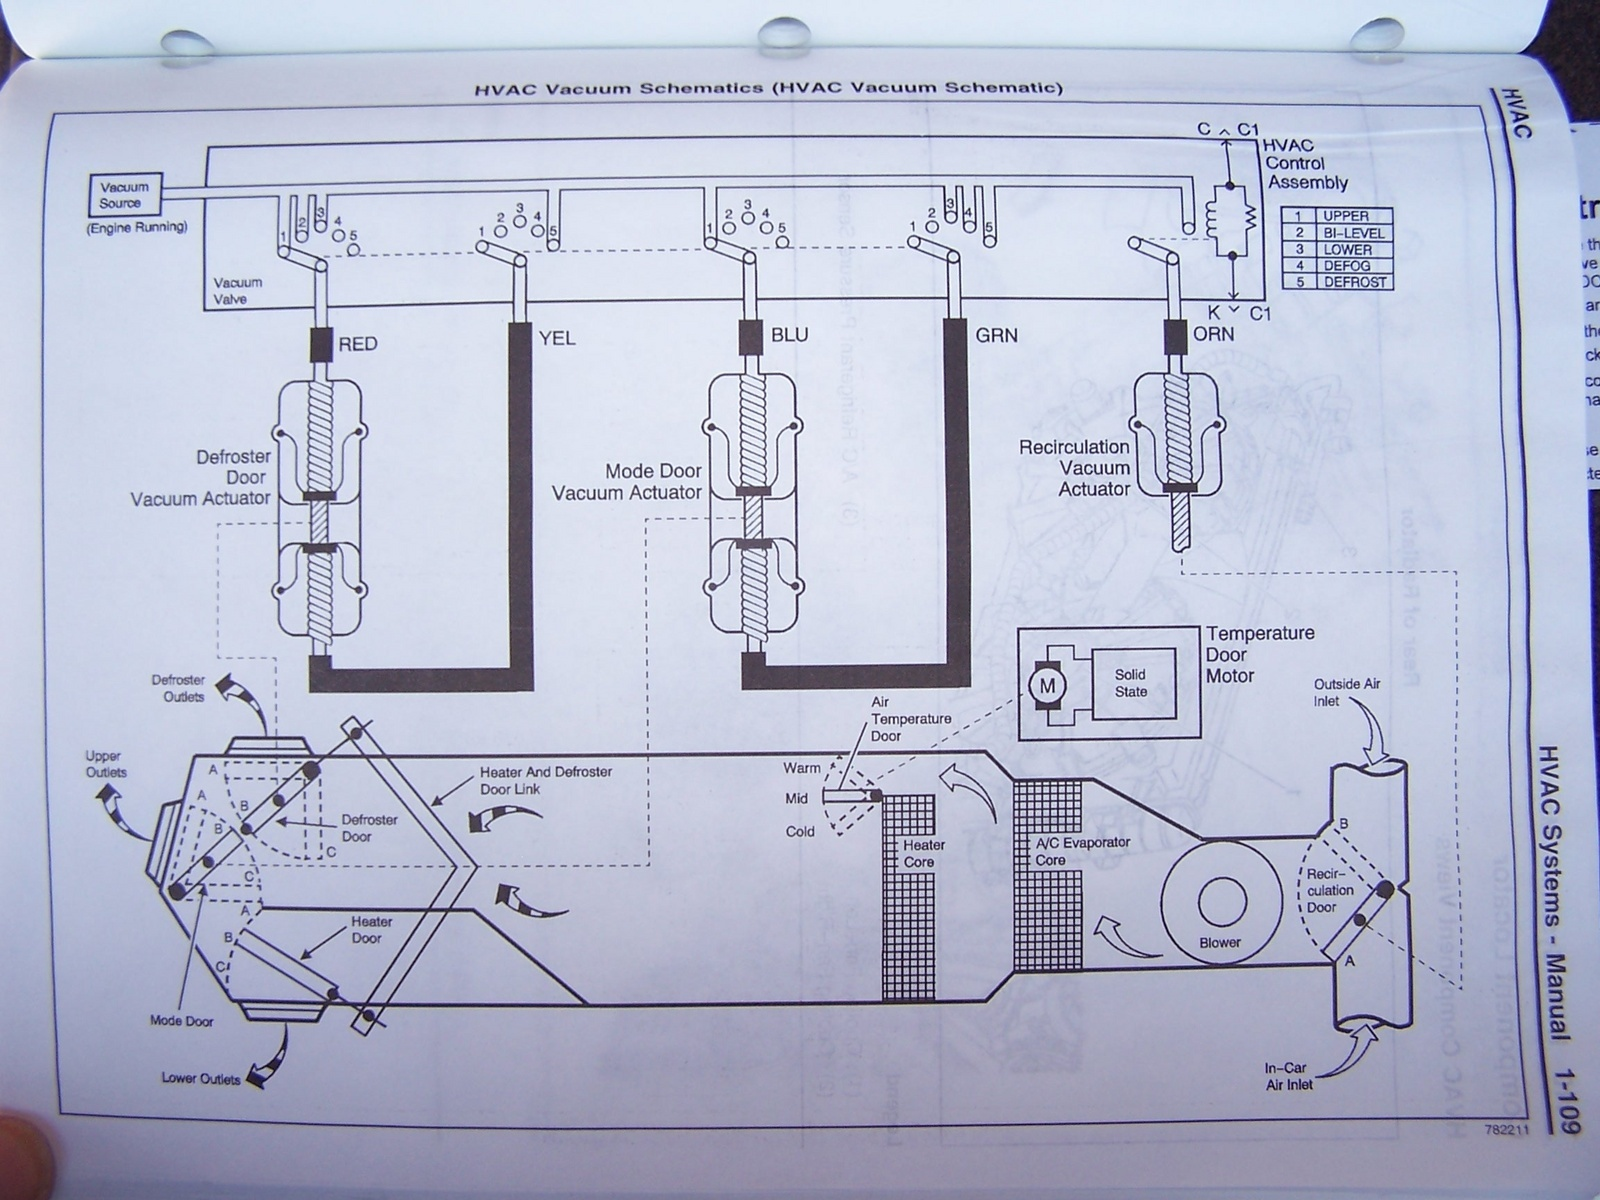 2004 Gmc Air Conditioner Diagram Wiring Diagram System Slow Norm Slow Norm Ediliadesign It